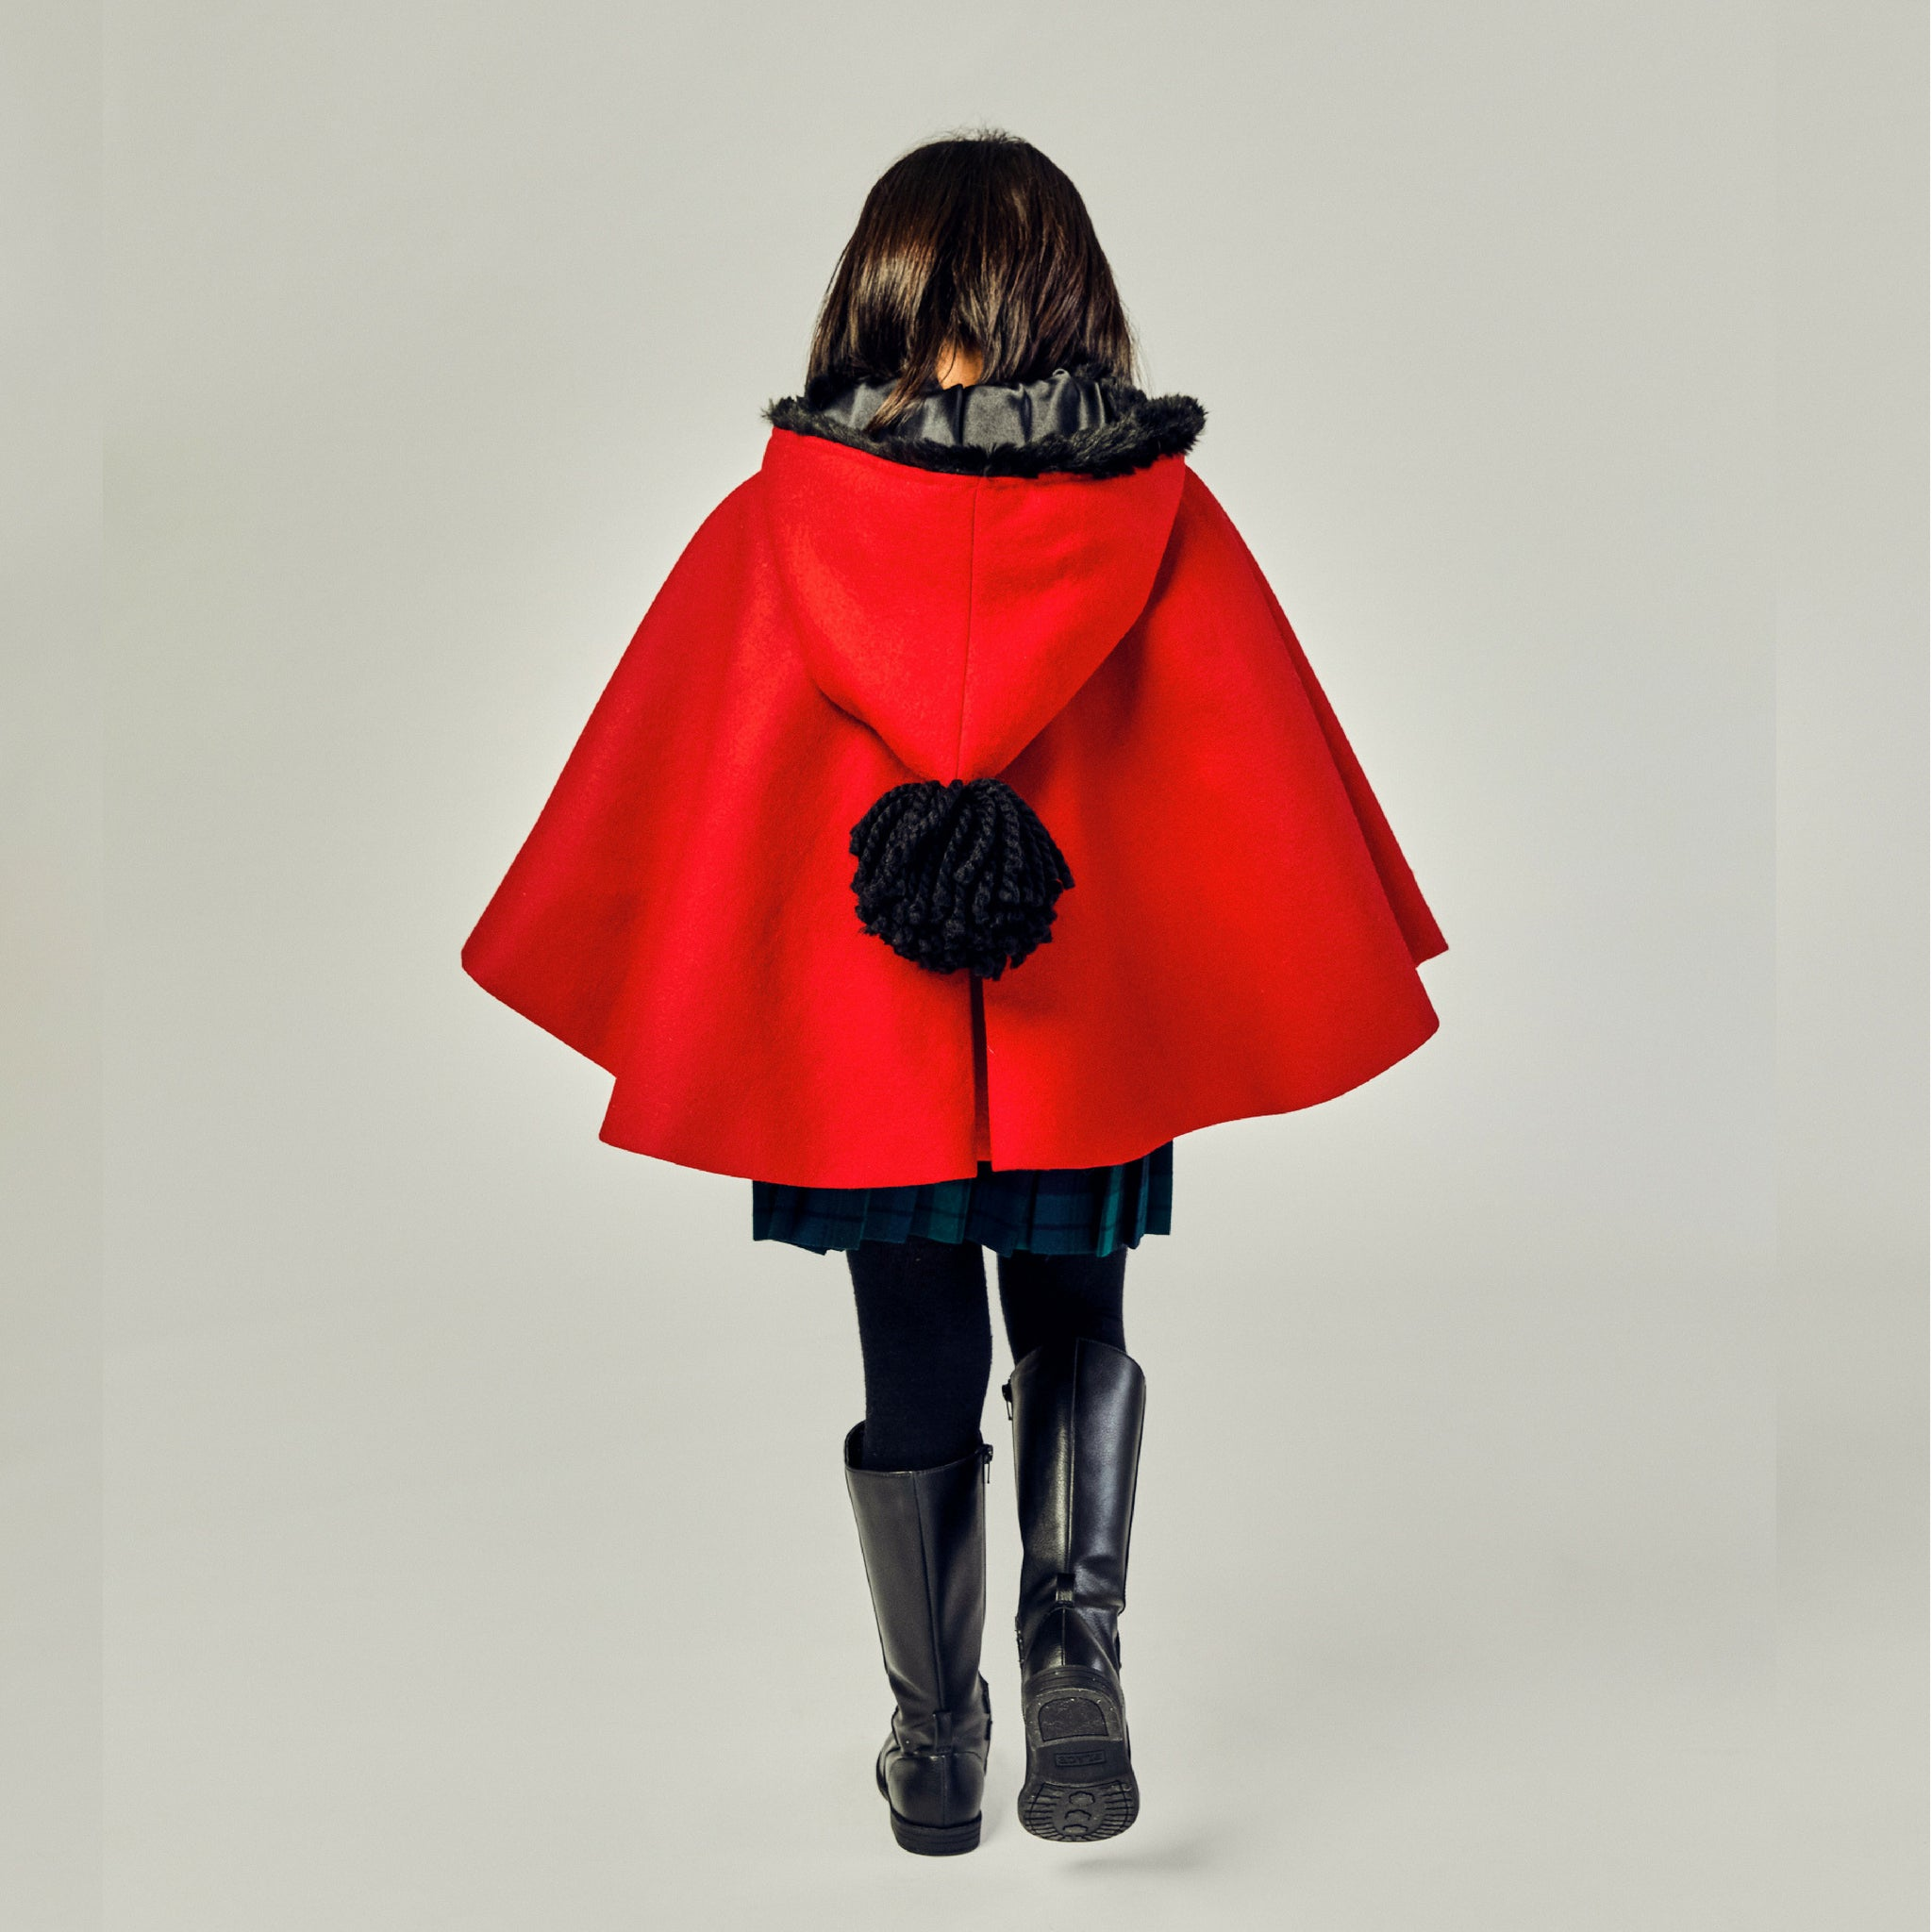 back view of young girl's red wool coat with black pom pom on hanging hood.